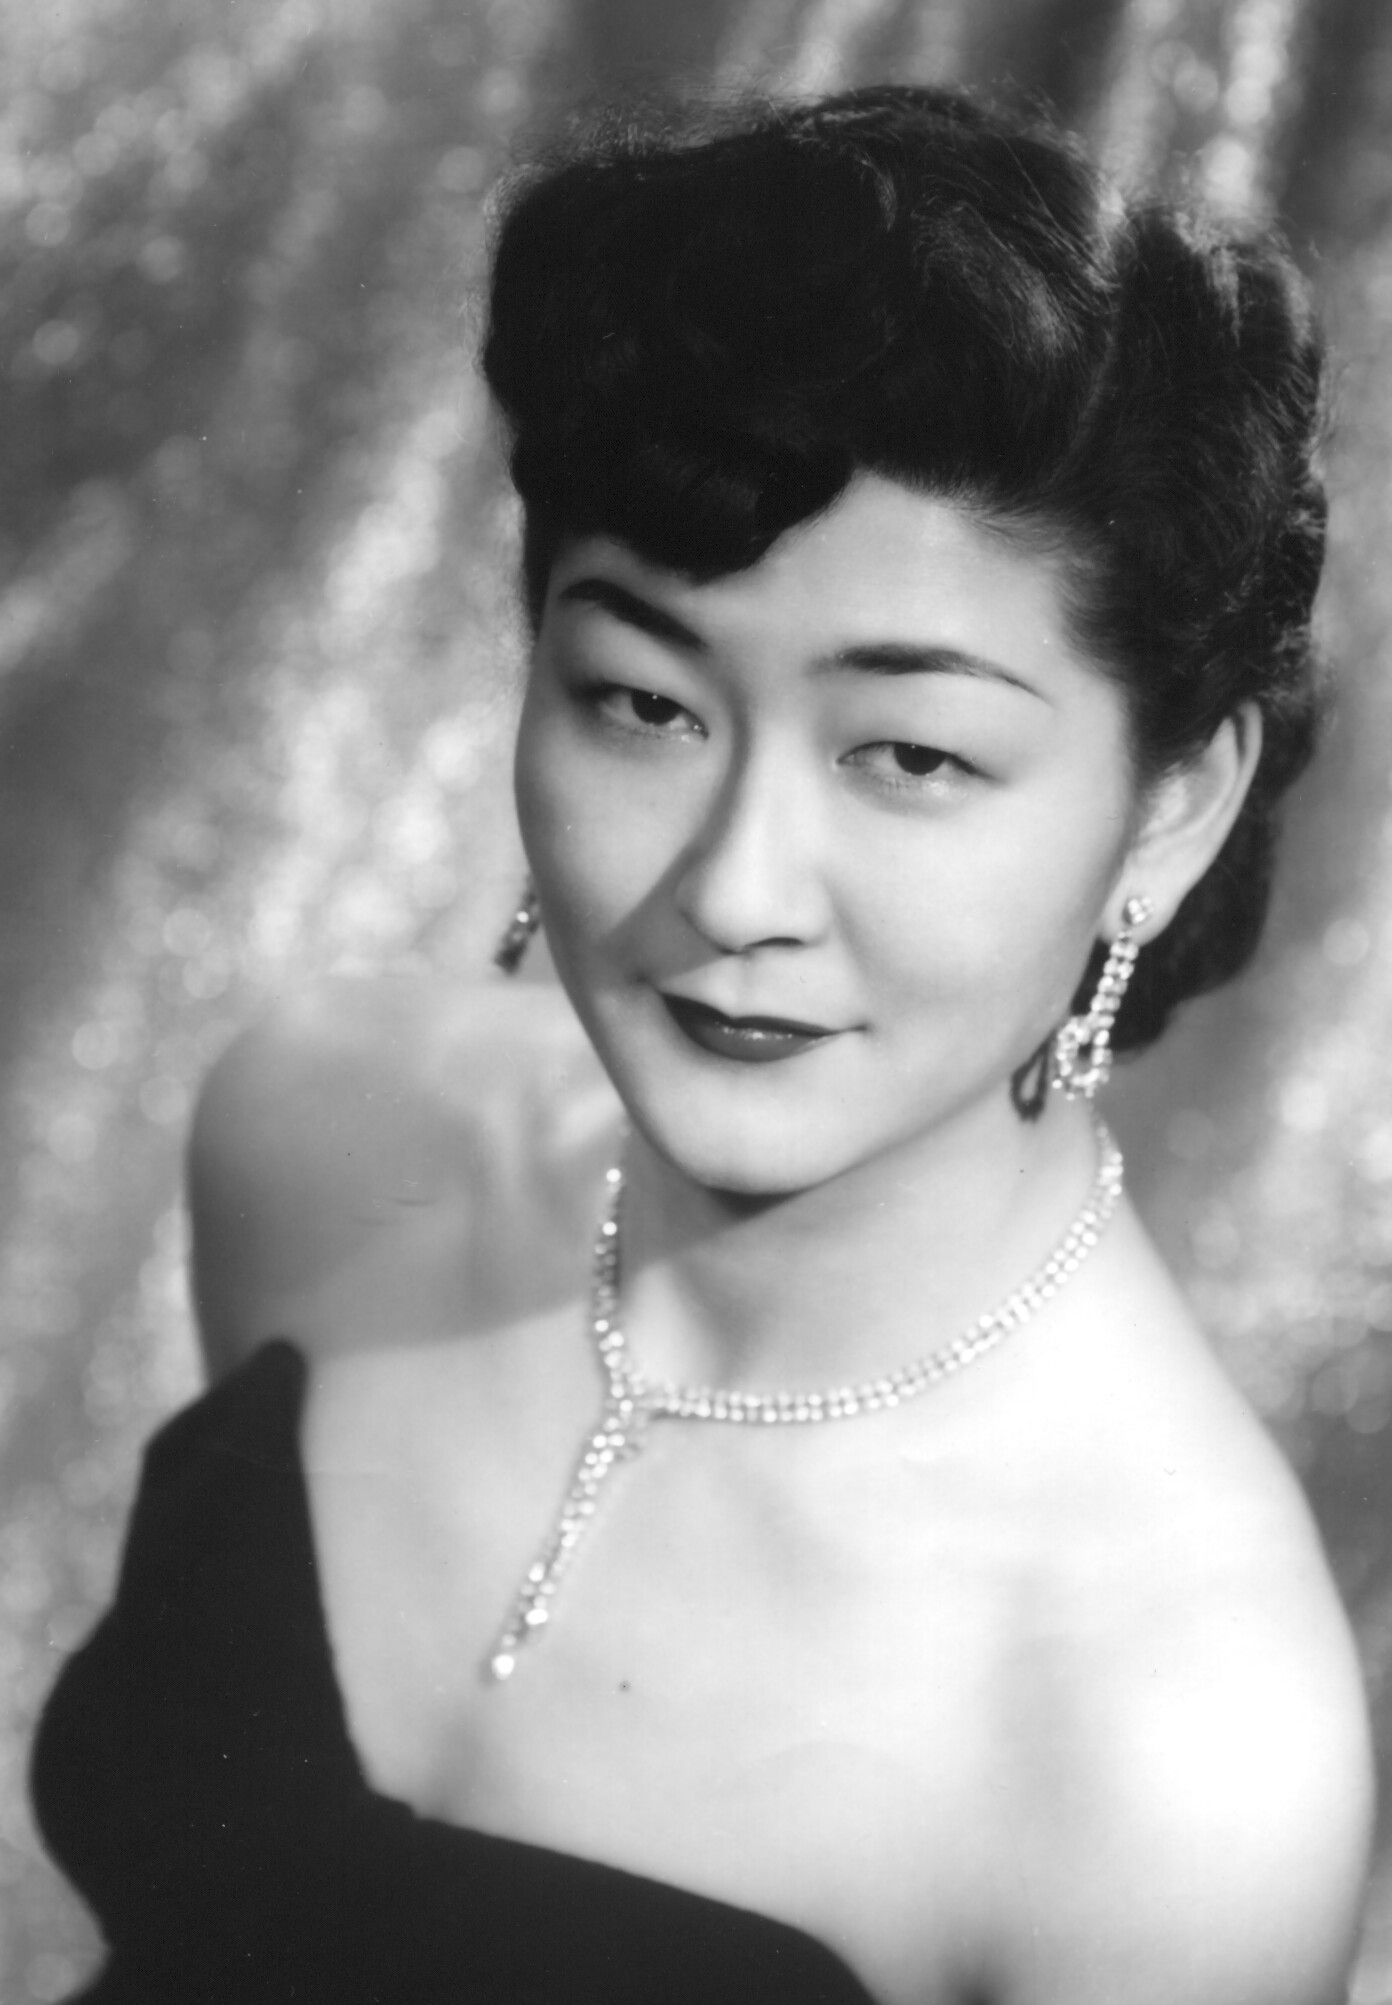 After World War II ended, Chickie moved to the Los Angeles area and began performing with Tets Bessho's big band and later with the Jim Araki quartet. She was 25 years old in this photo.